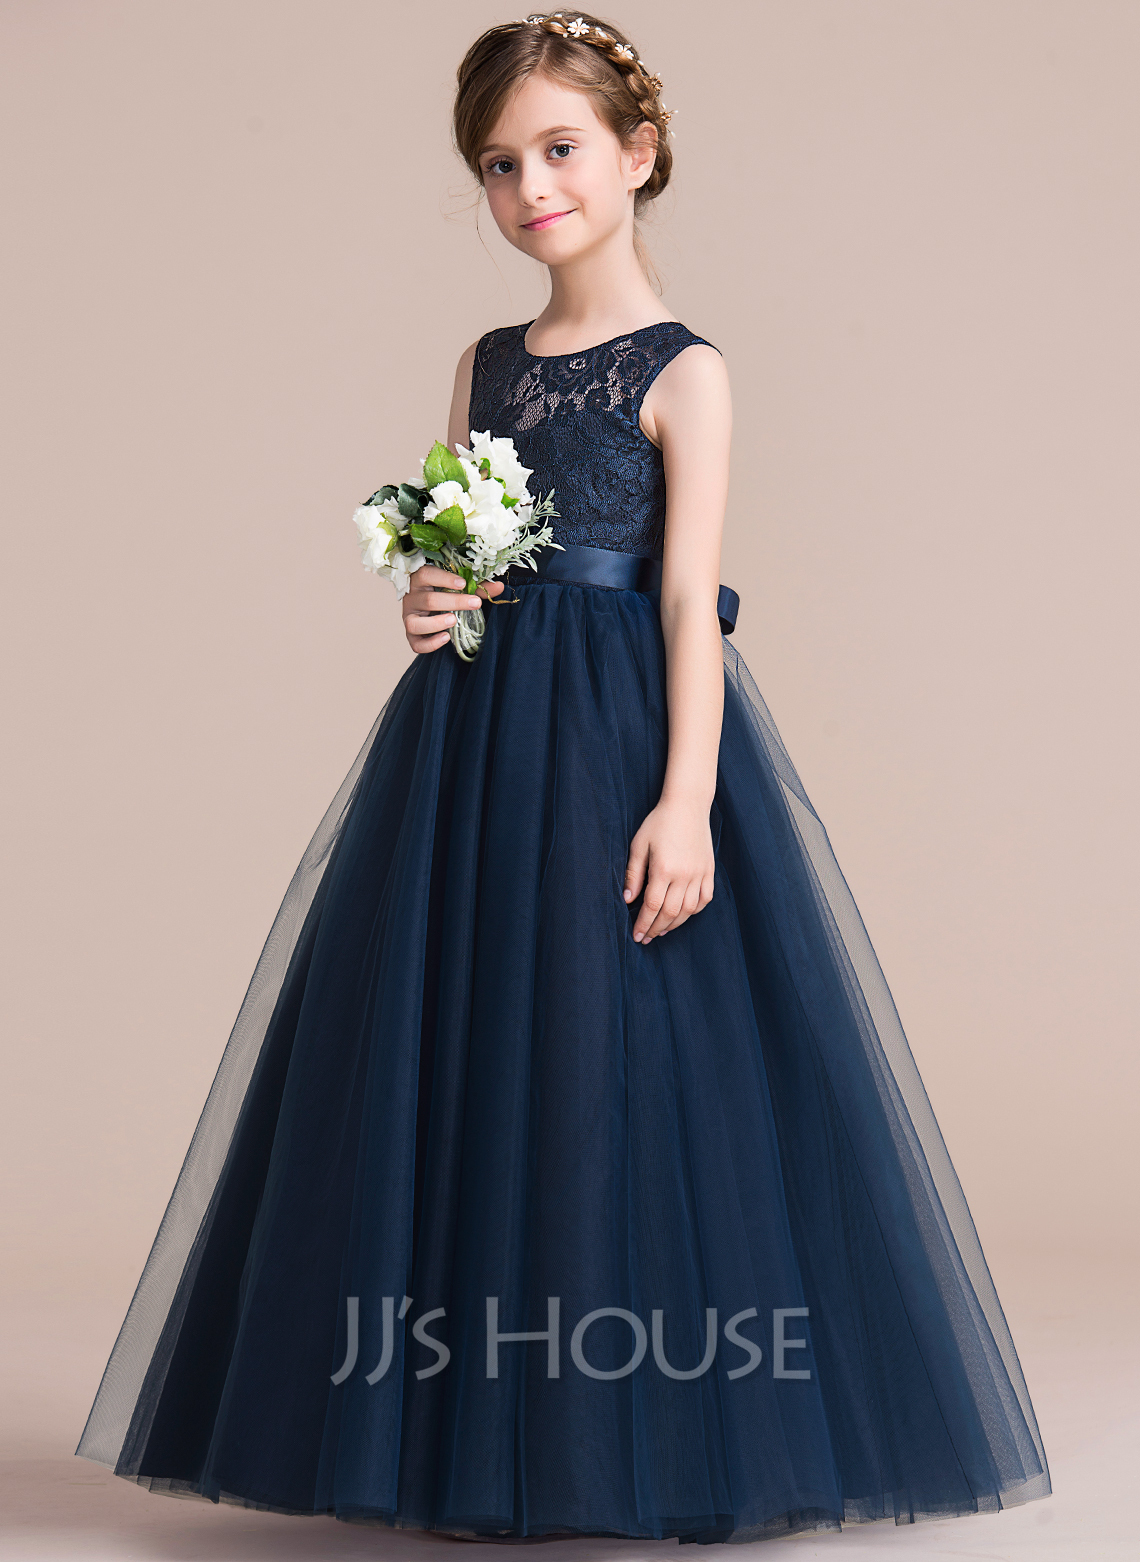 A-Line Princess Scoop Neck Floor-Length Tulle Junior Bridesmaid Dress With  Sash. Loading zoom f4634597b41e